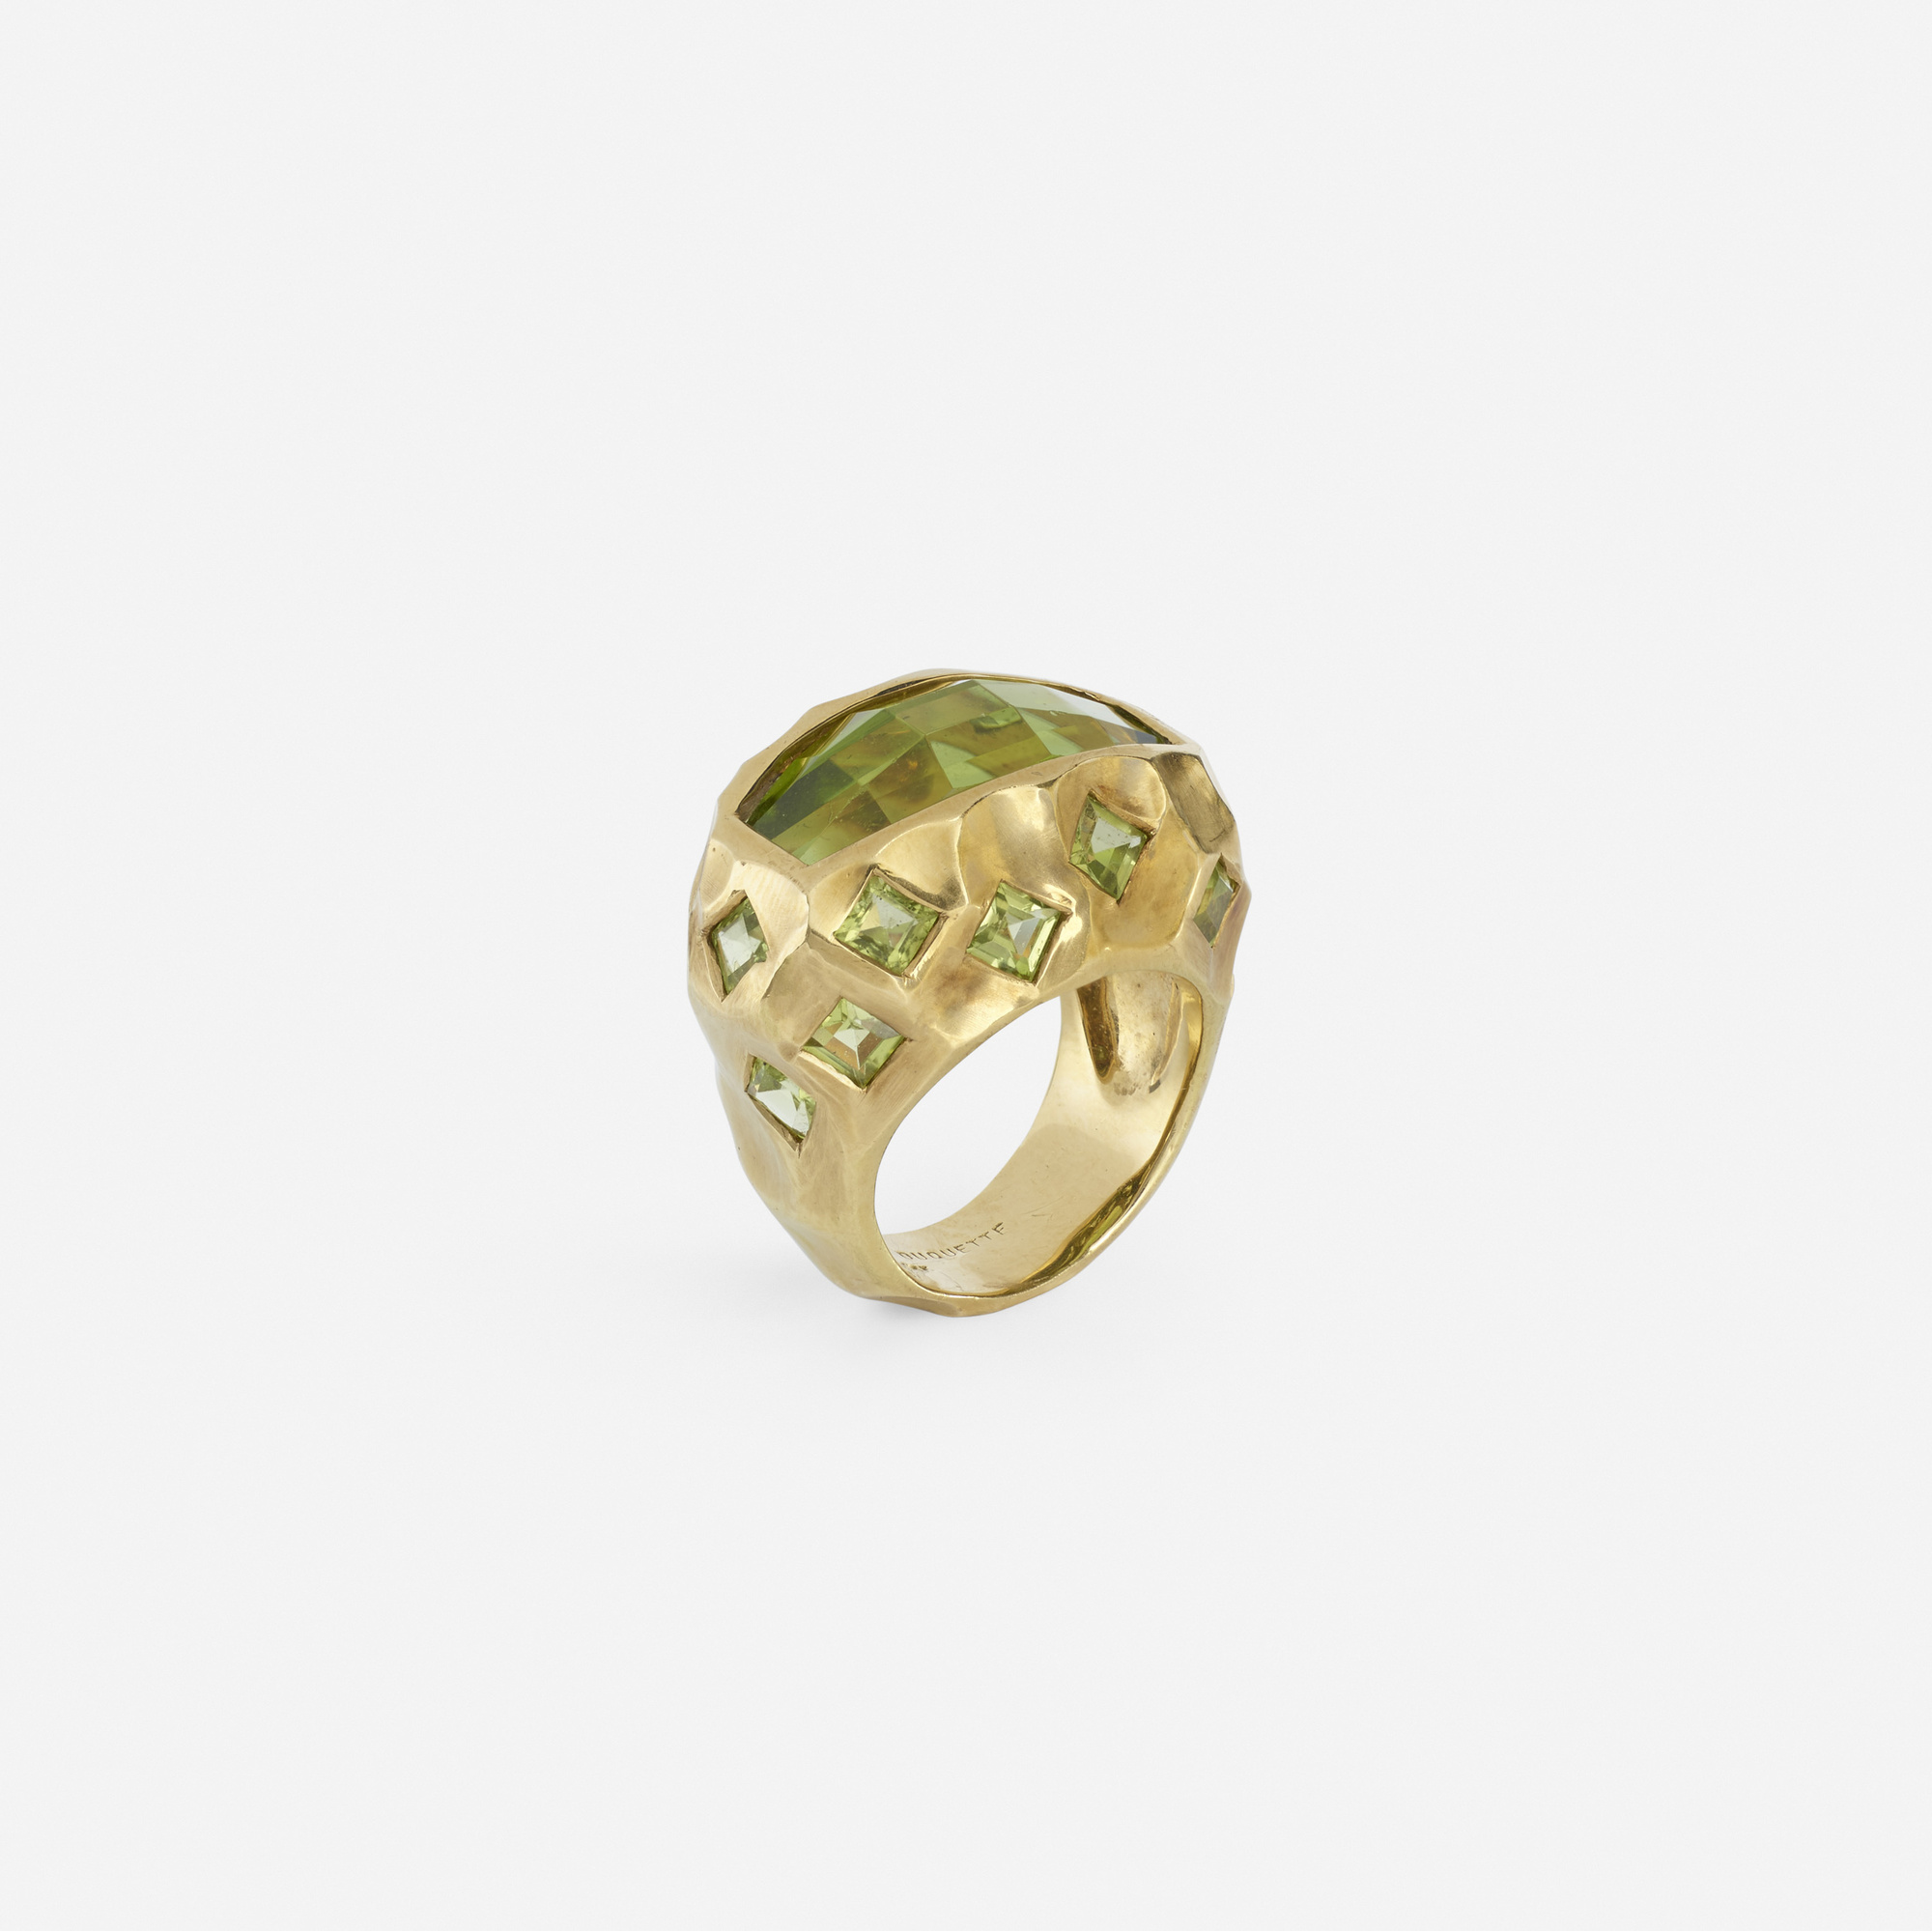 154: Tony Duquette / A gold and green tourmaline ring (1 of 2)